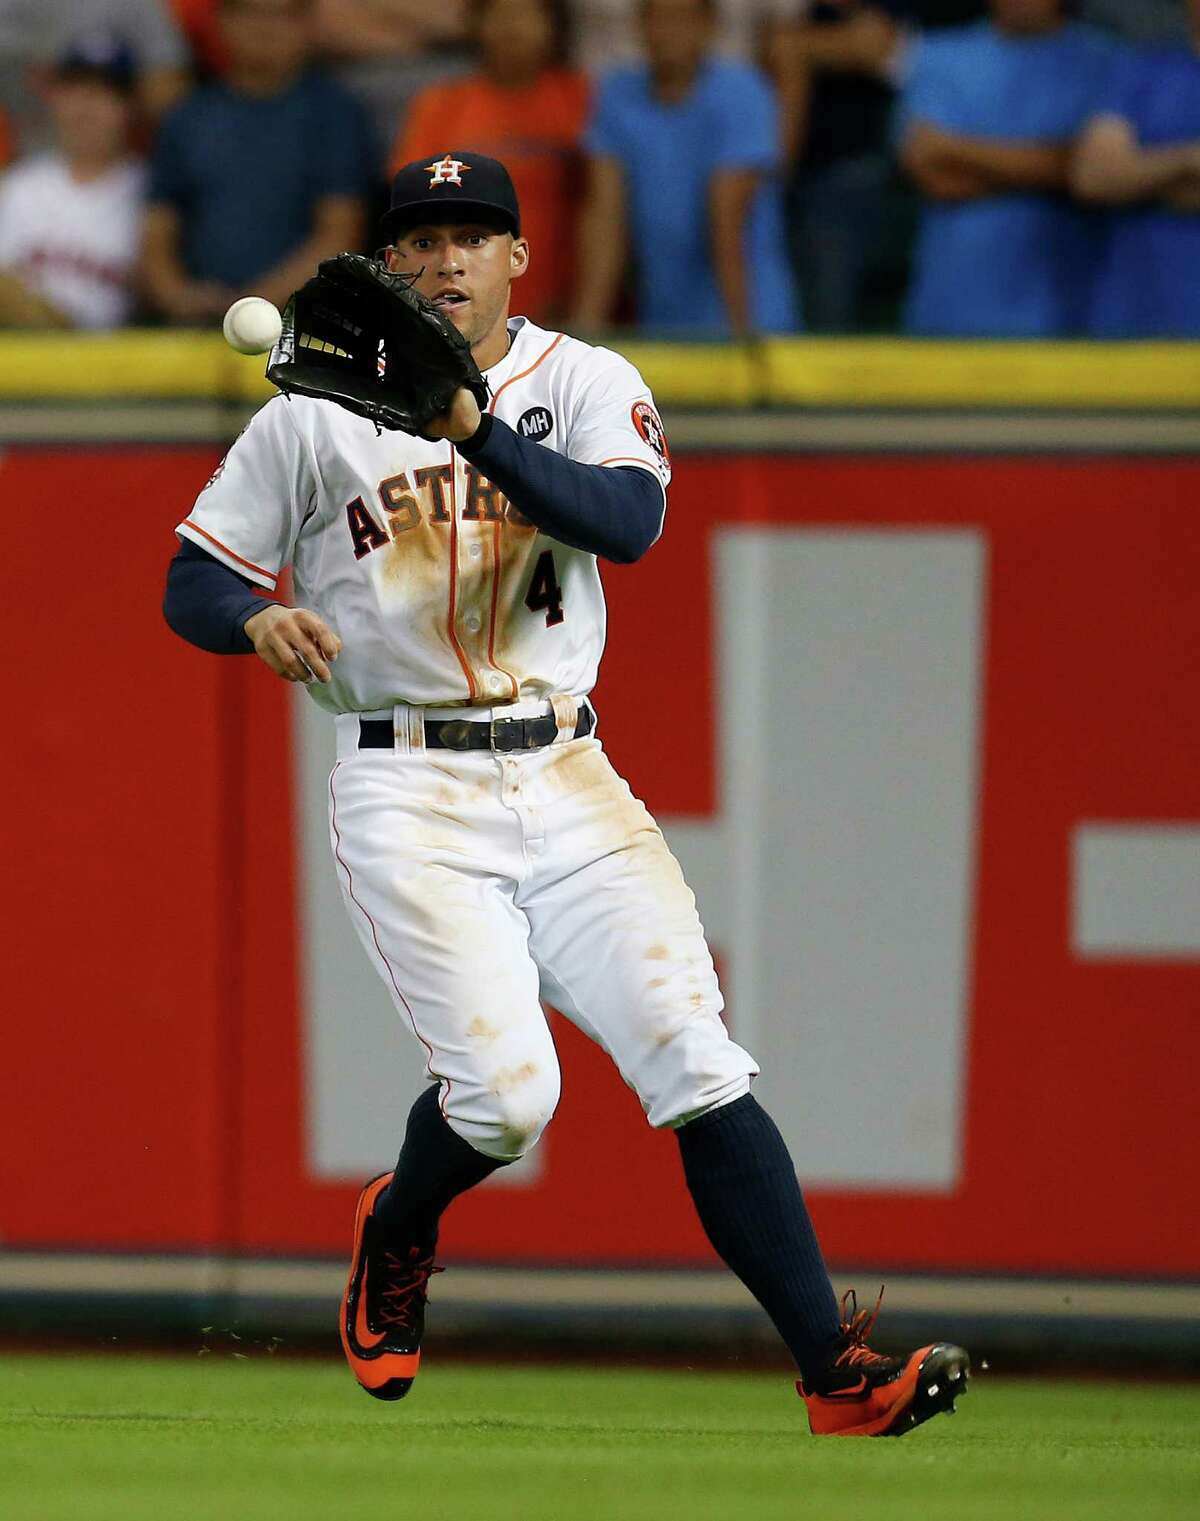 Houston Astros right fielder George Springer (4) tries to make a catch on Los Angeles Angels left fielder Collin Cowgill's line drive during the ninth inning of an MLB game at Minute Maid Park on Monday, Sept. 21, 2015.